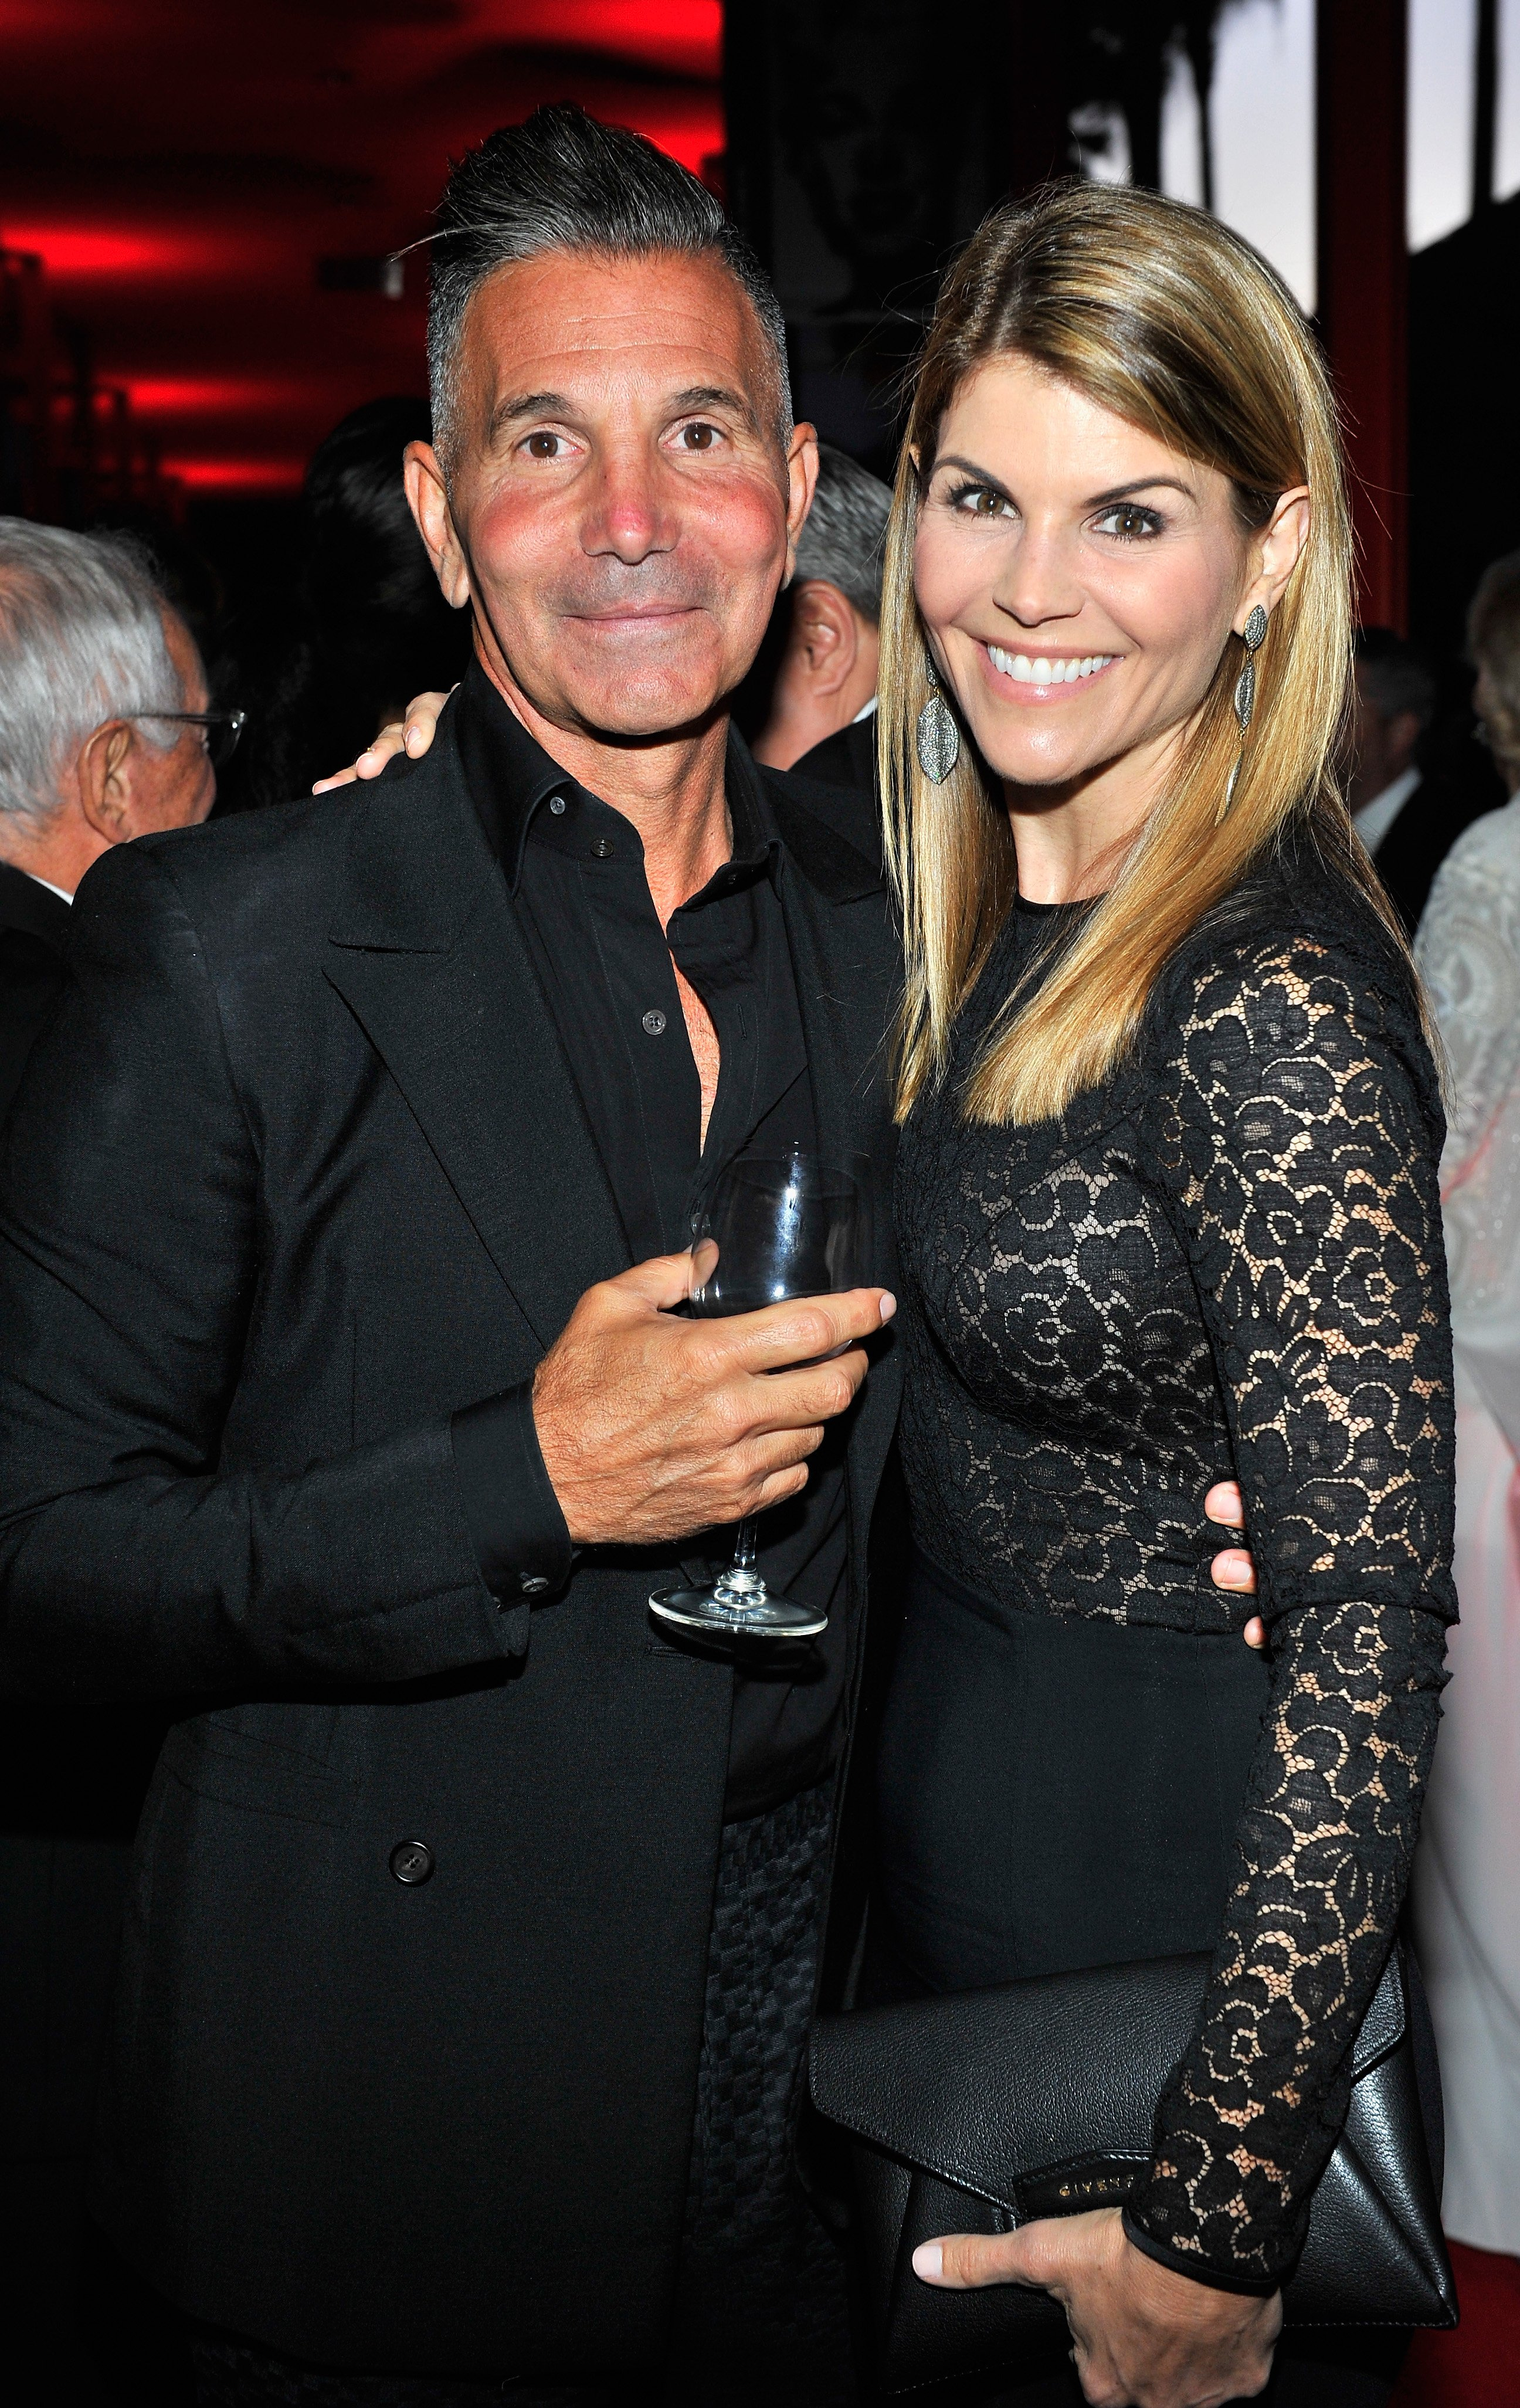 Lori Loughlin with her husband Mossimo Giannulli at the LACMA's 50th Anniversary Gala | Photo: Getty Images